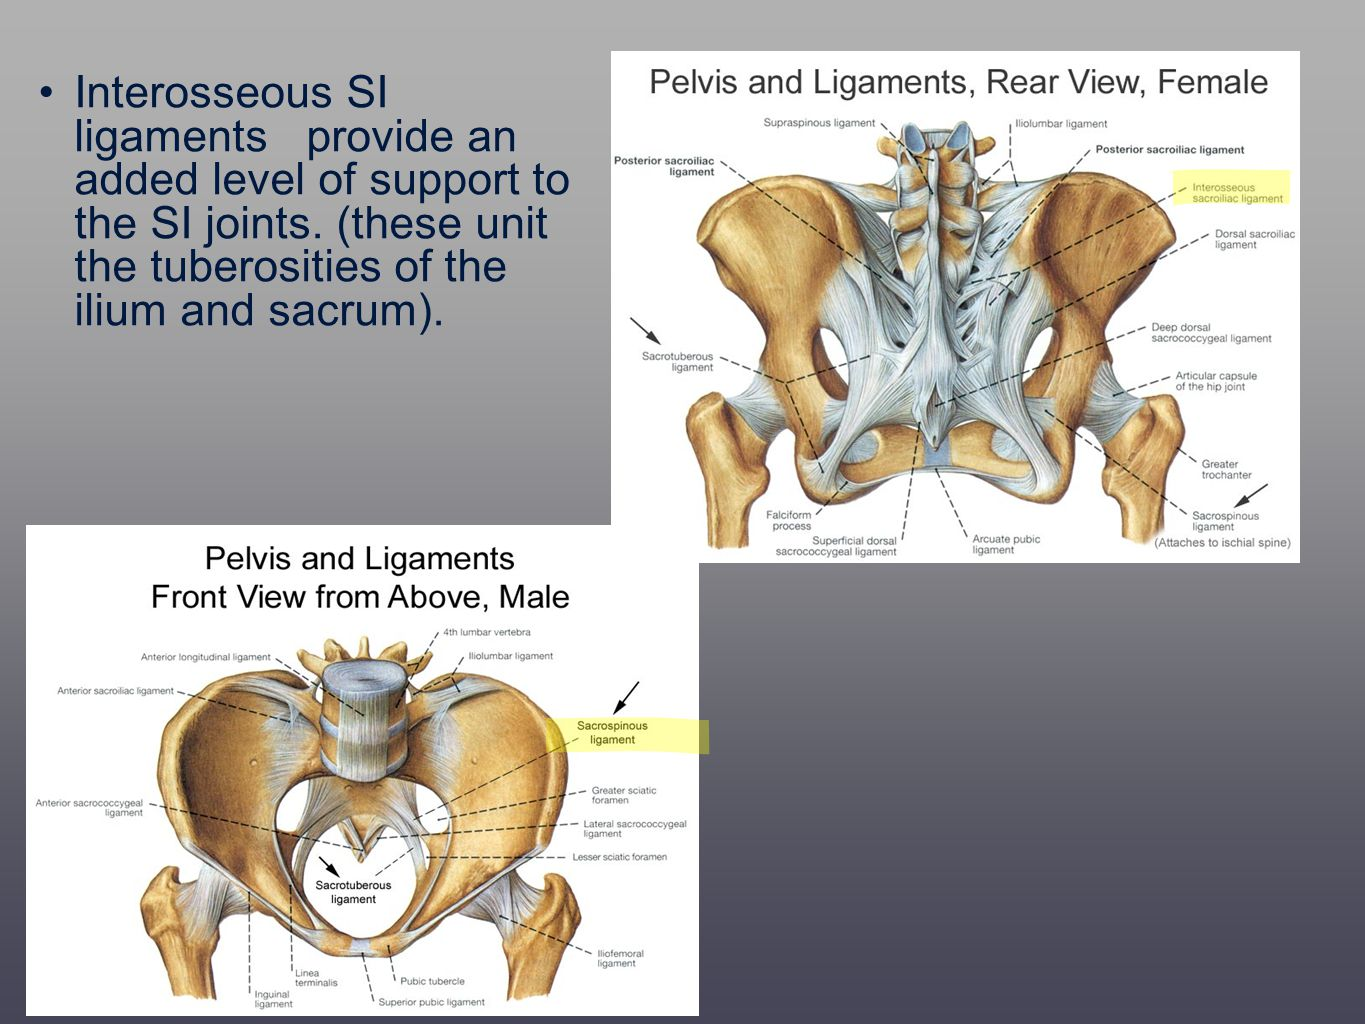 Interosseous SI ligaments provide an added level of support to the SI joints.